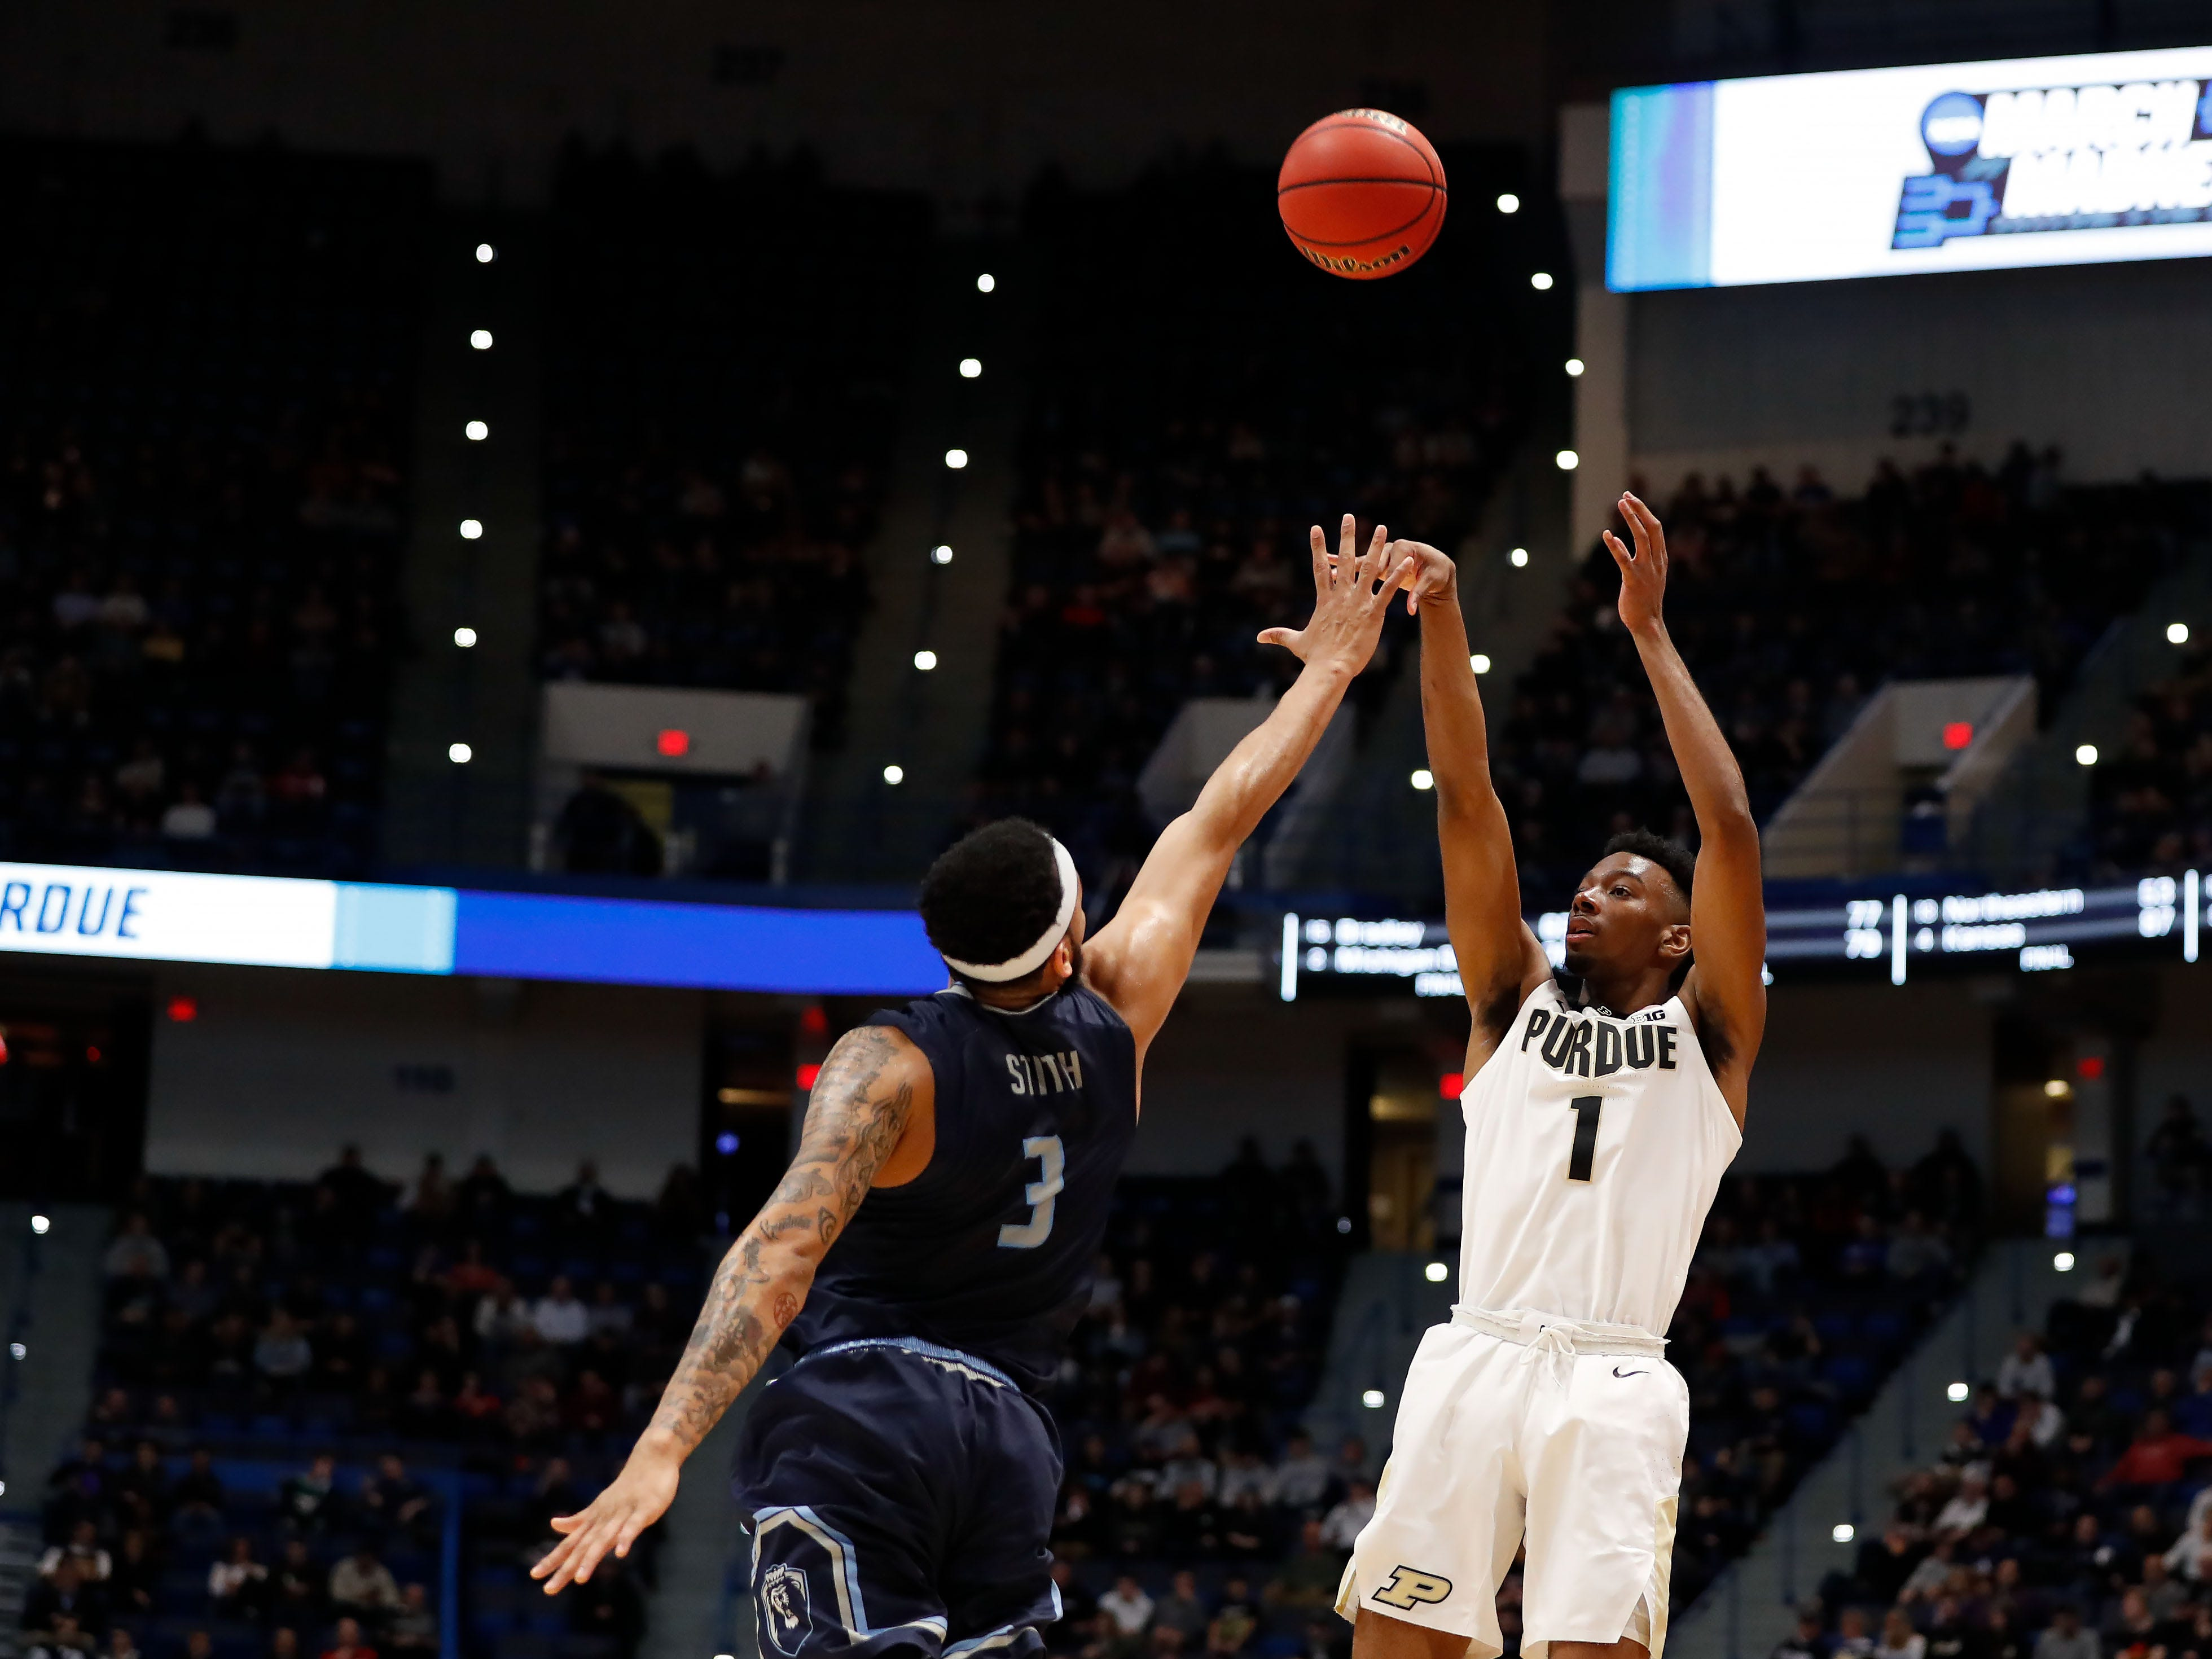 Mar 21, 2019; Hartford, CT, USA; Purdue Boilermakers forward Aaron Wheeler (1) attempts a shot over Old Dominion Monarchs guard B.J. Stith (3) during the first half of a game in the first round of the 2019 NCAA Tournament at XL Center. Mandatory Credit: David Butler II-USA TODAY Sports